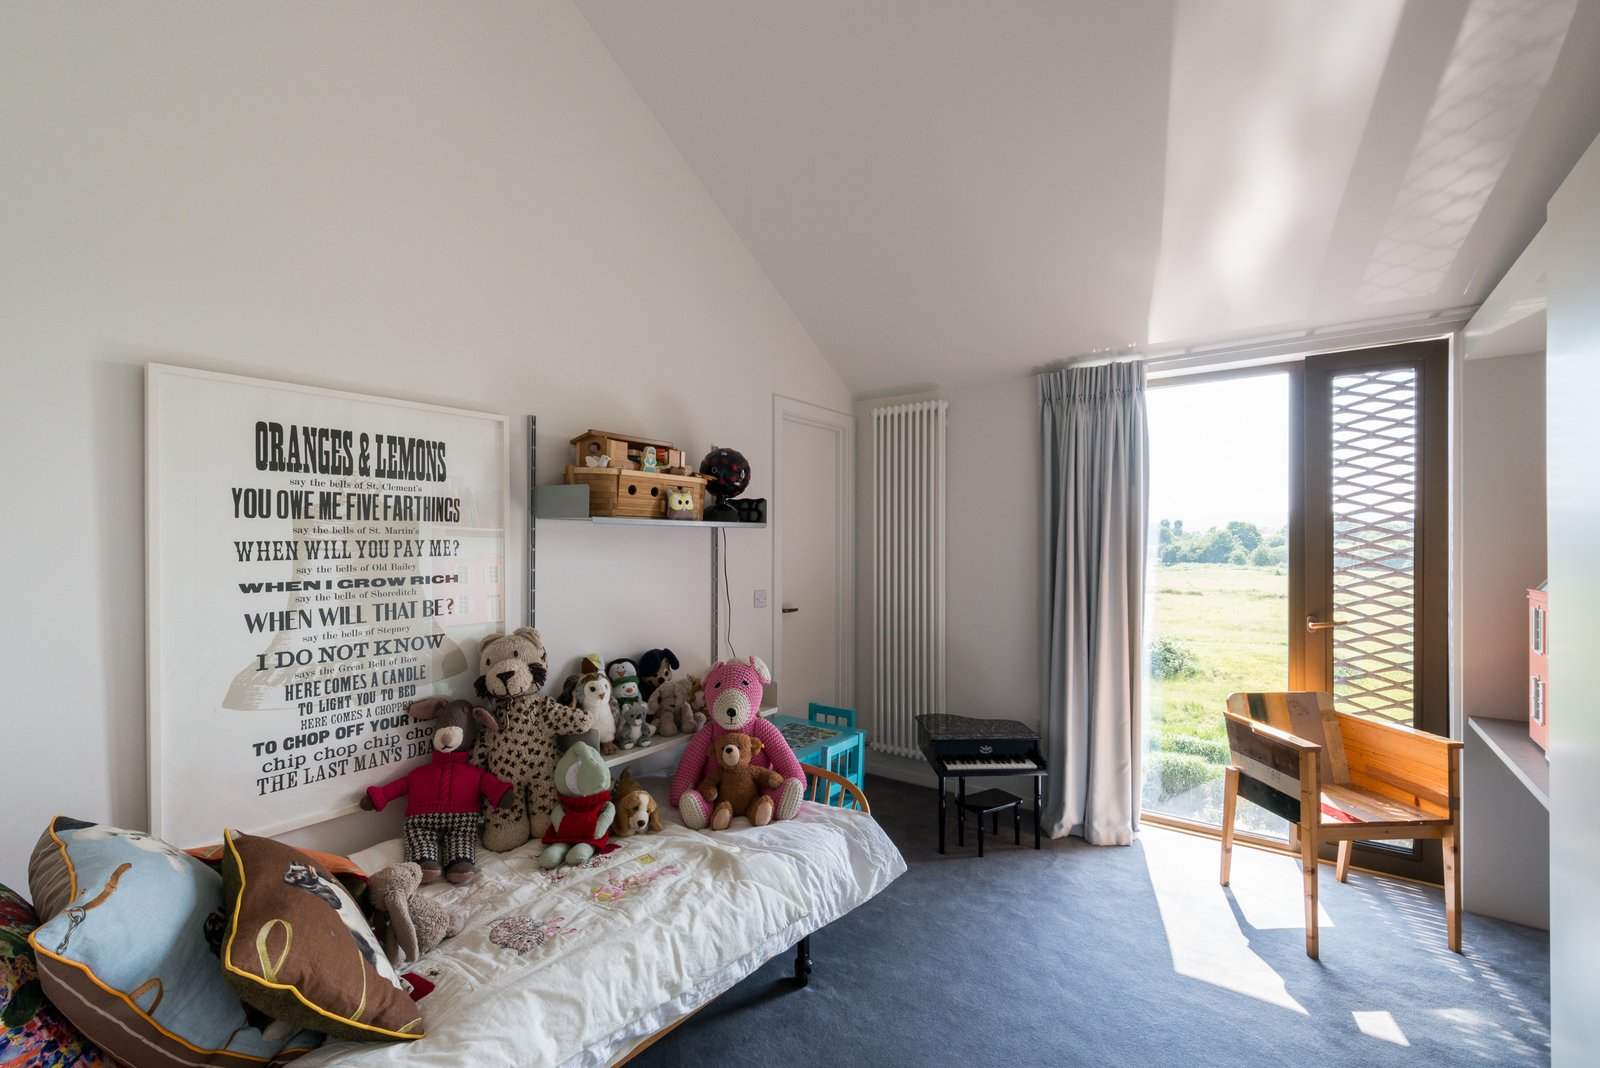 Kids Room, Bed, Bedroom Room Type, Shelves, Chair, Toddler Age, Neutral Gender, and Carpet Floor  Photo 11 of 12 in Explore a Prefabricated House For Sale in England That's Clad With Cor-Ten Steel